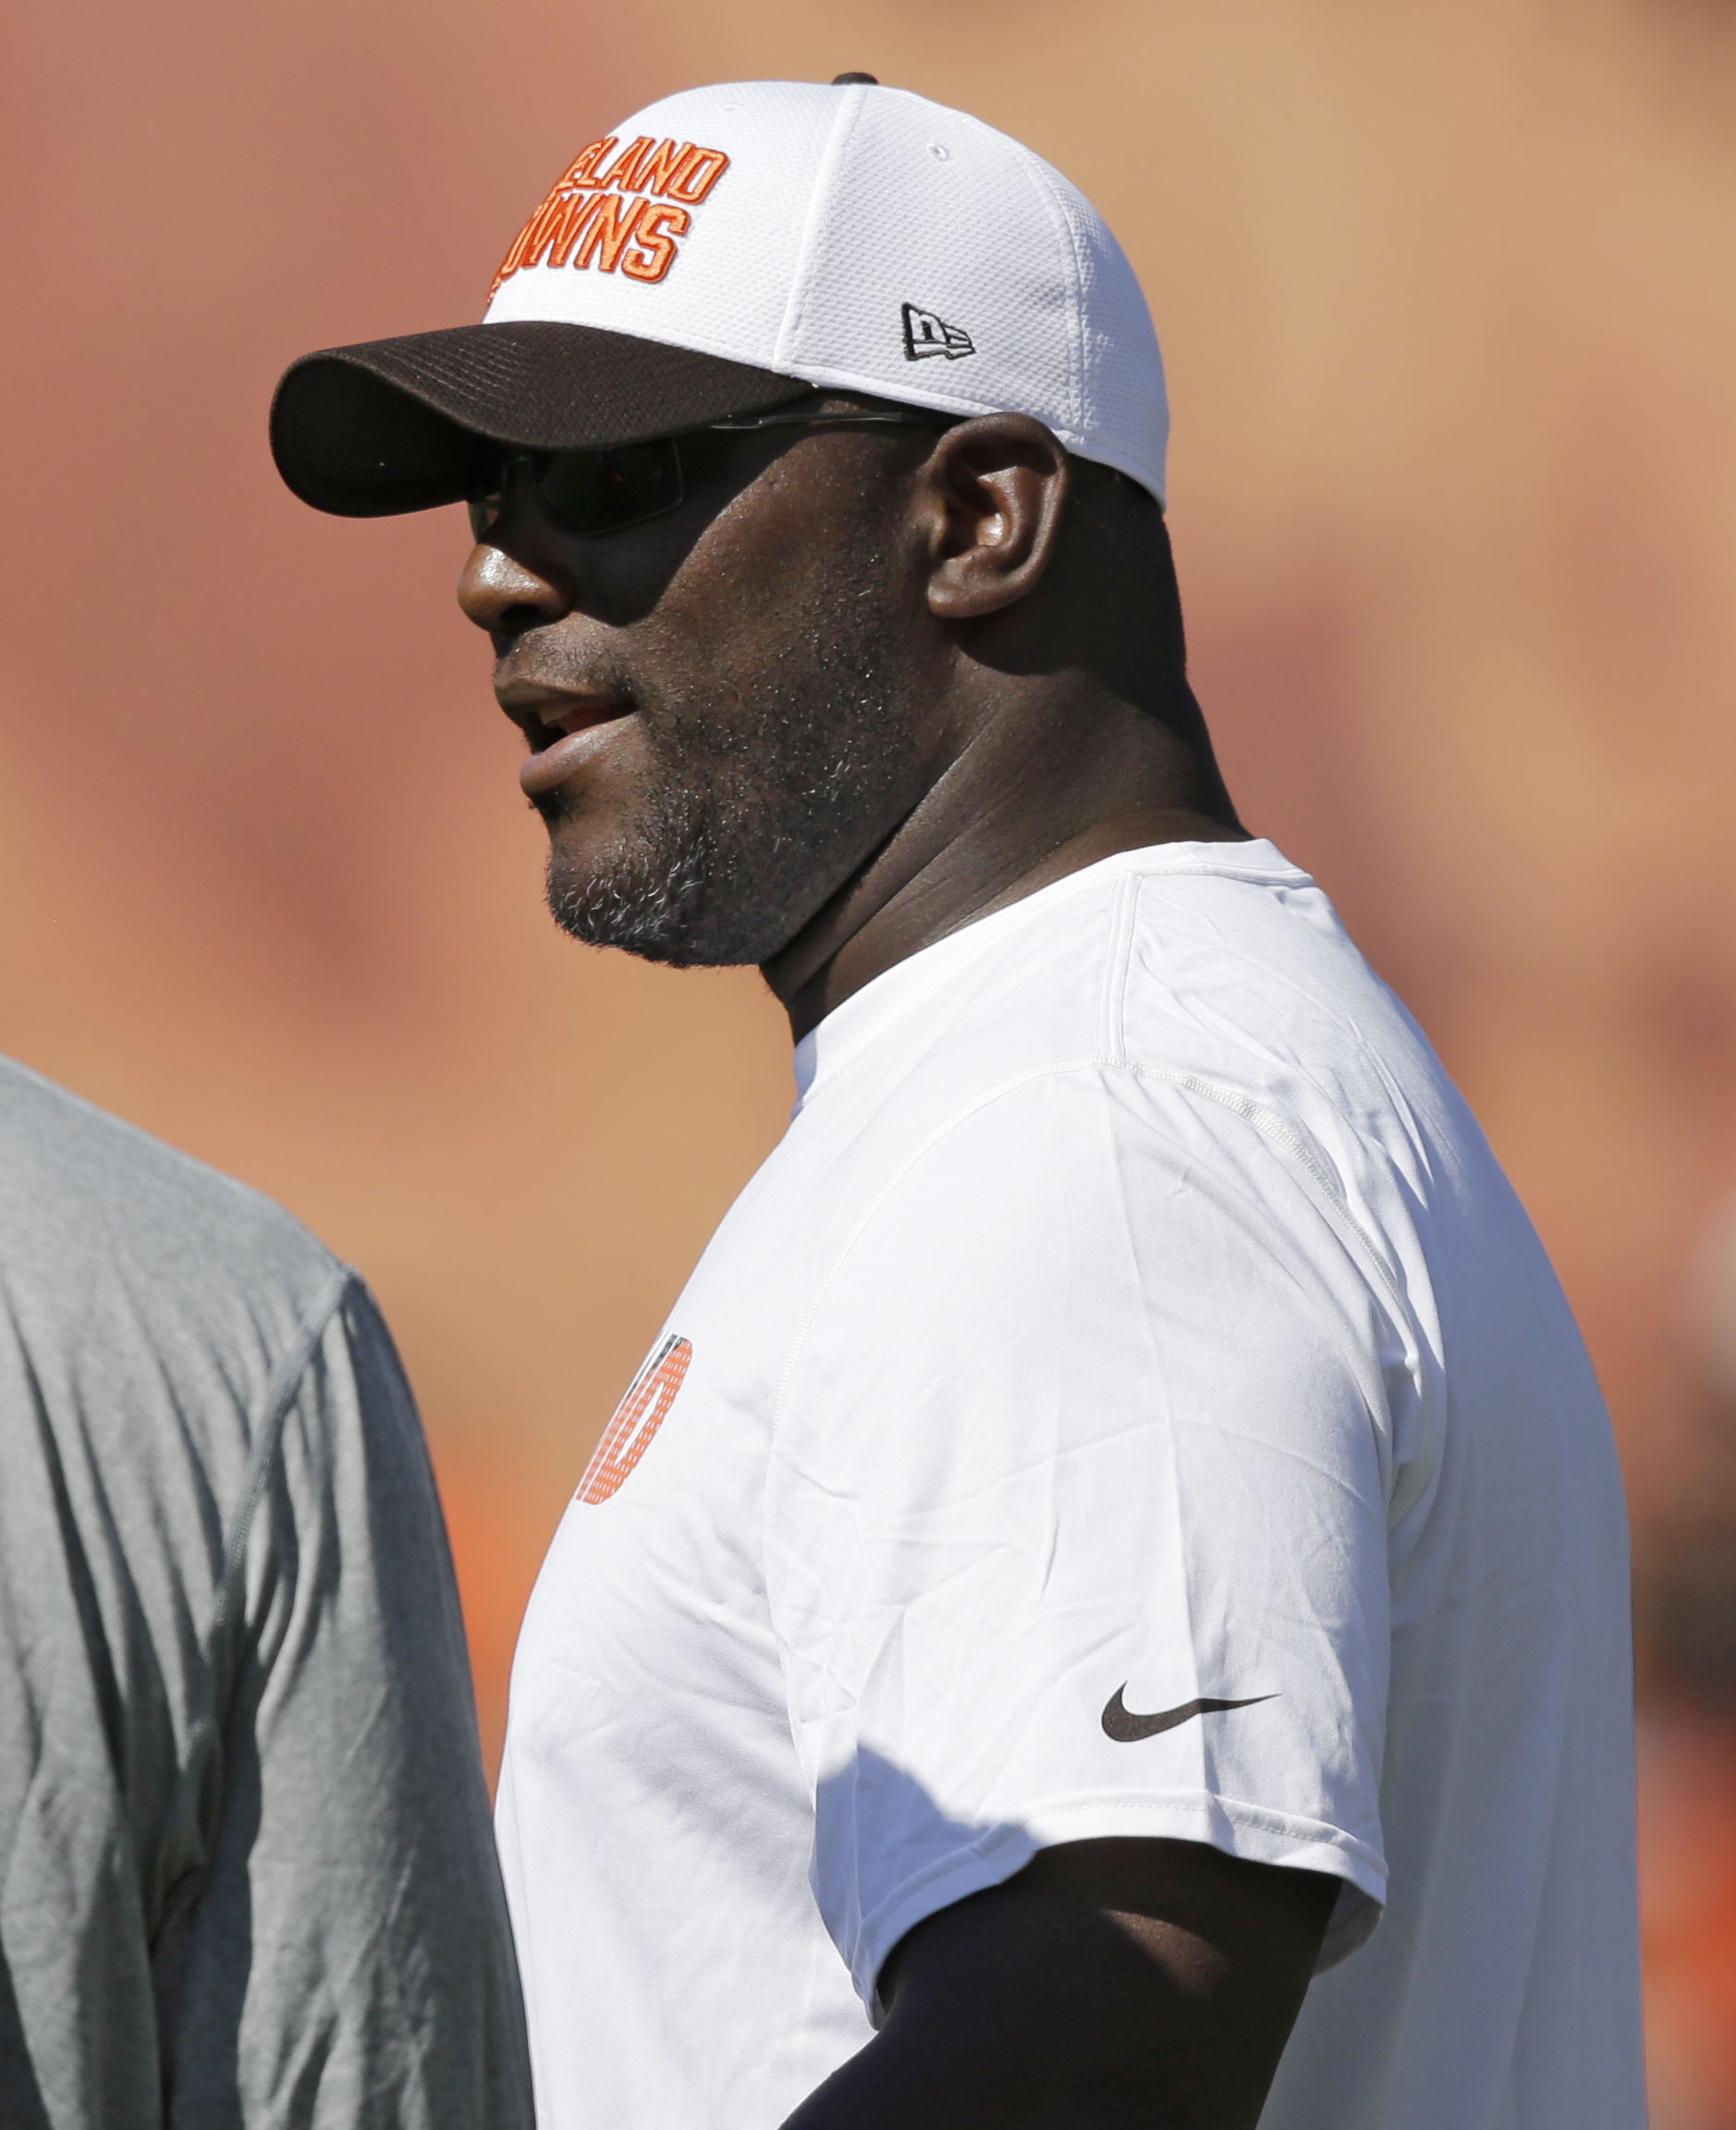 Cleveland Browns general manager Ray Farmer watches practice at the NFL football team's training camp Friday, July 31, 2015, in Berea, Ohio. (AP Photo/Tony Dejak)